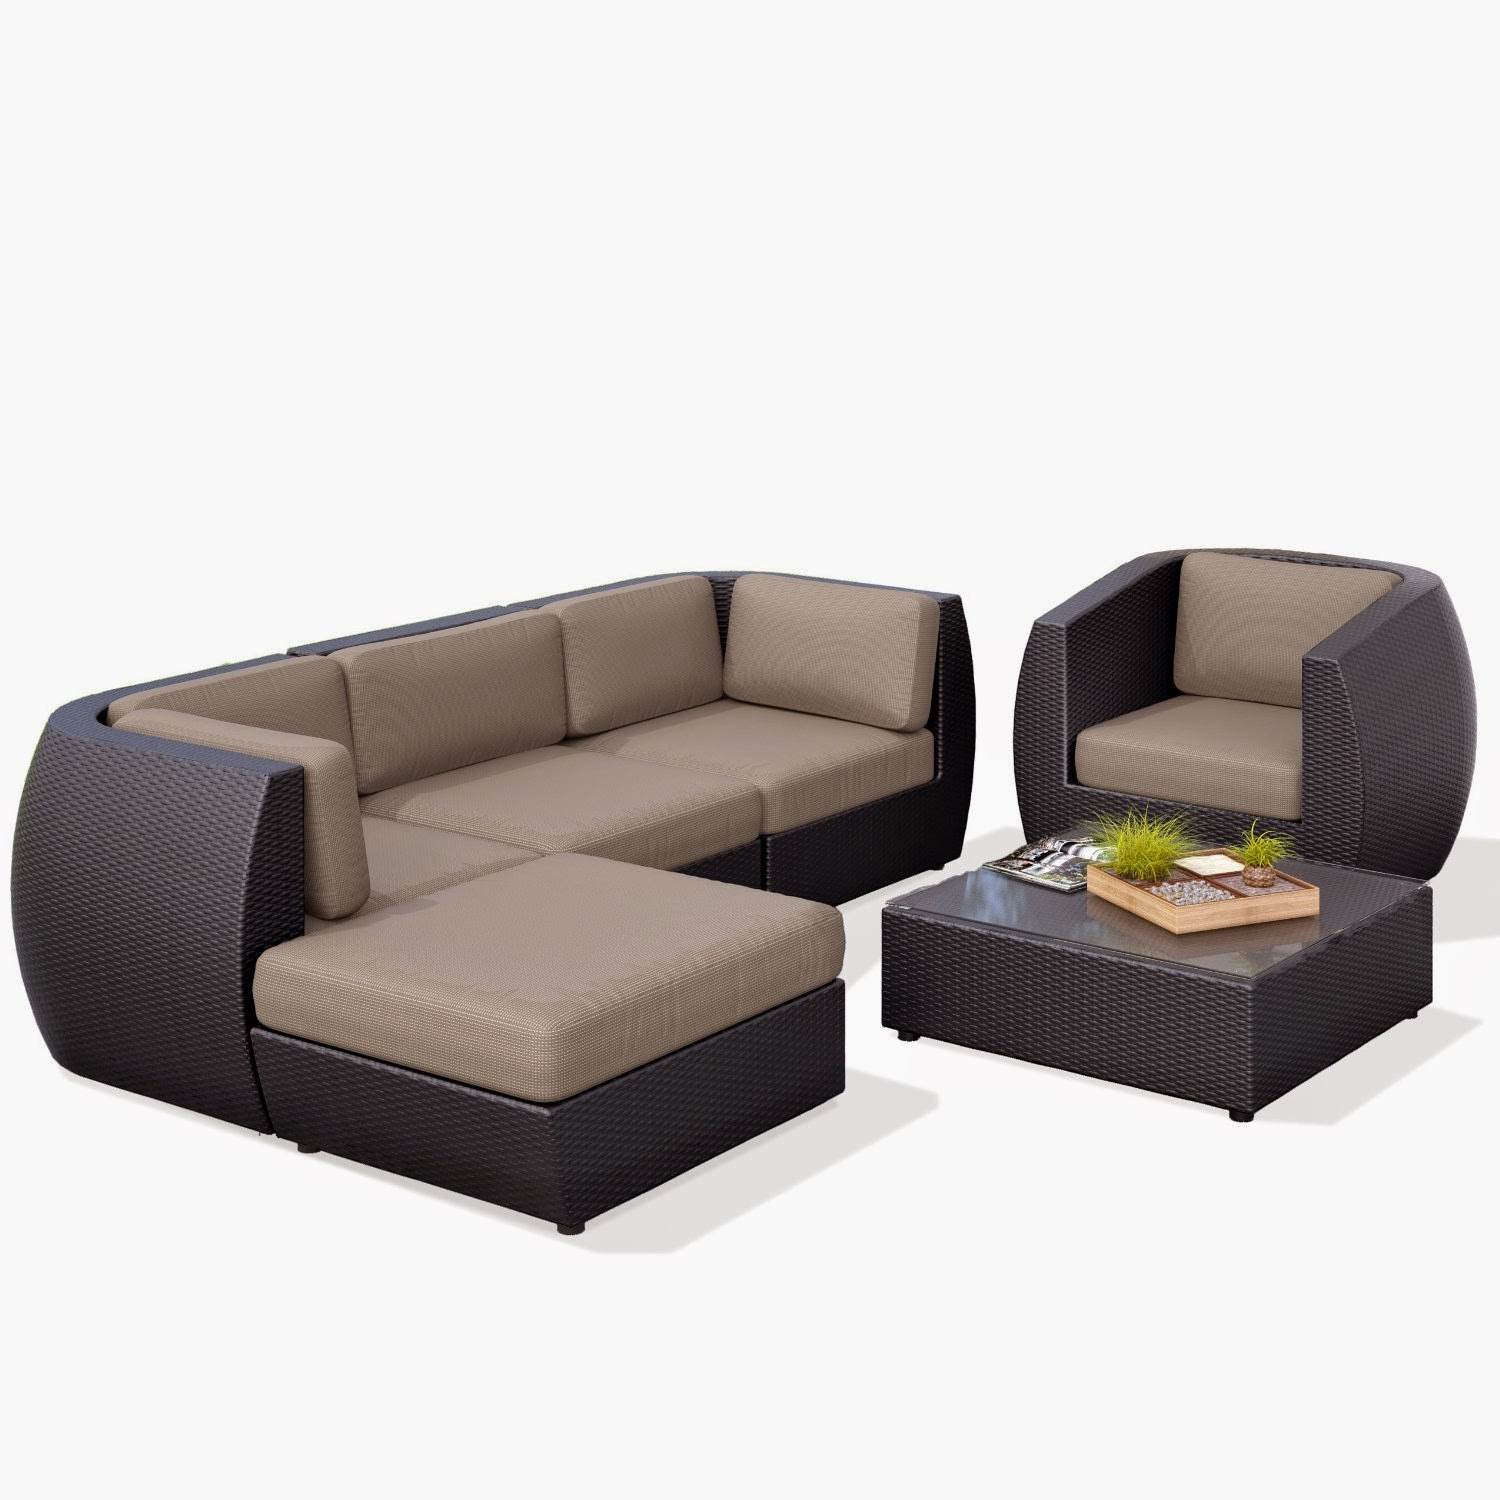 conversation sofas reviews leather sofa white spots curved and loveseats